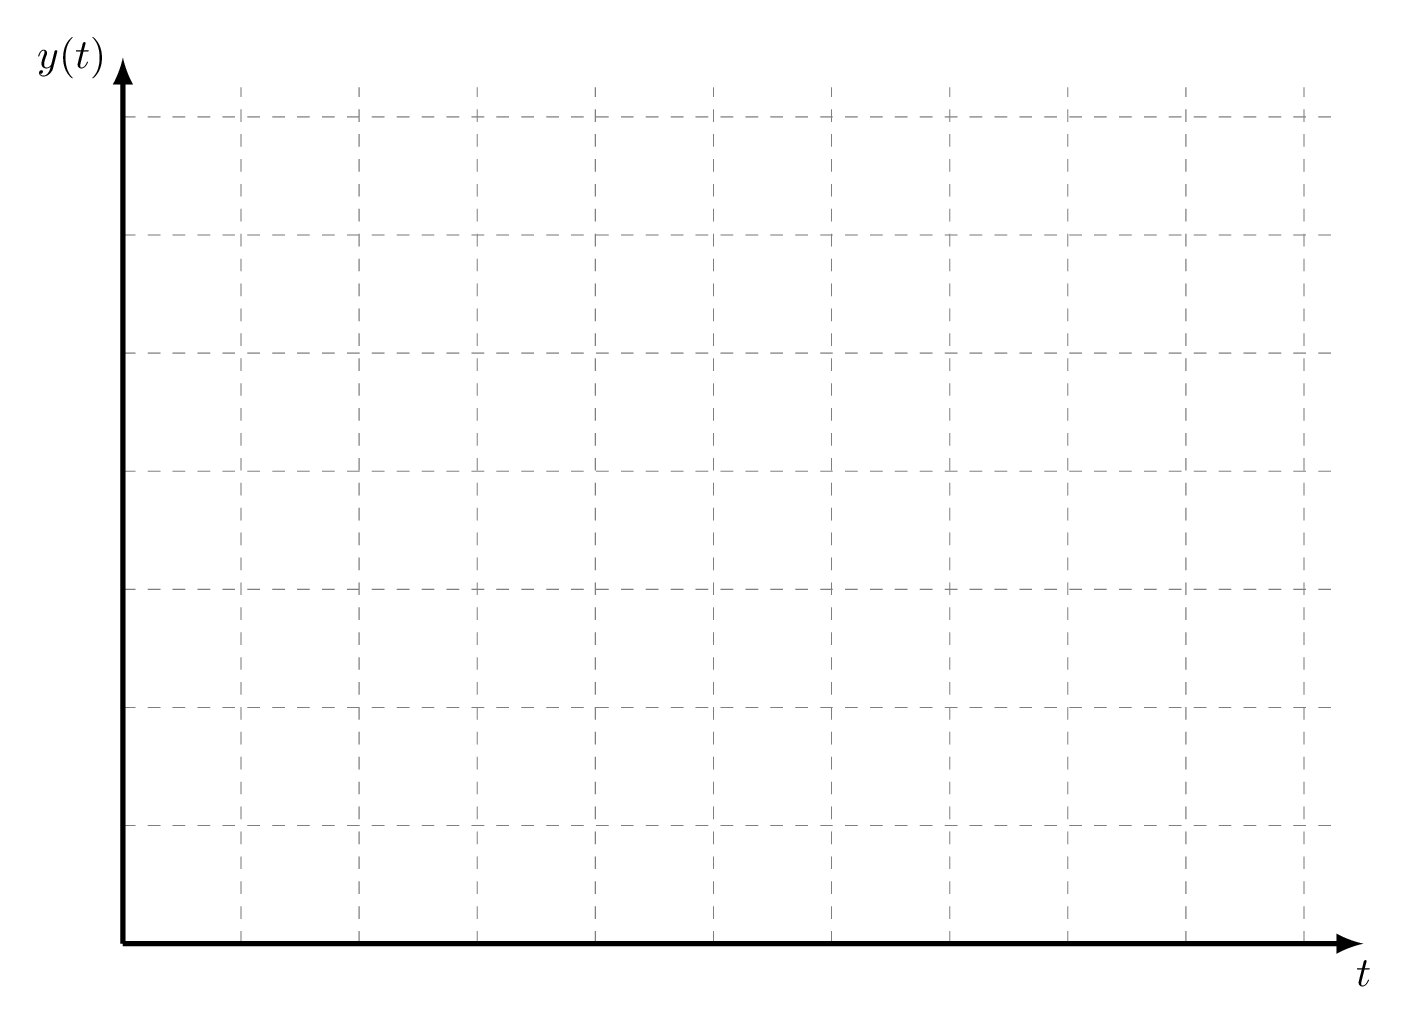 Add axes to the grid